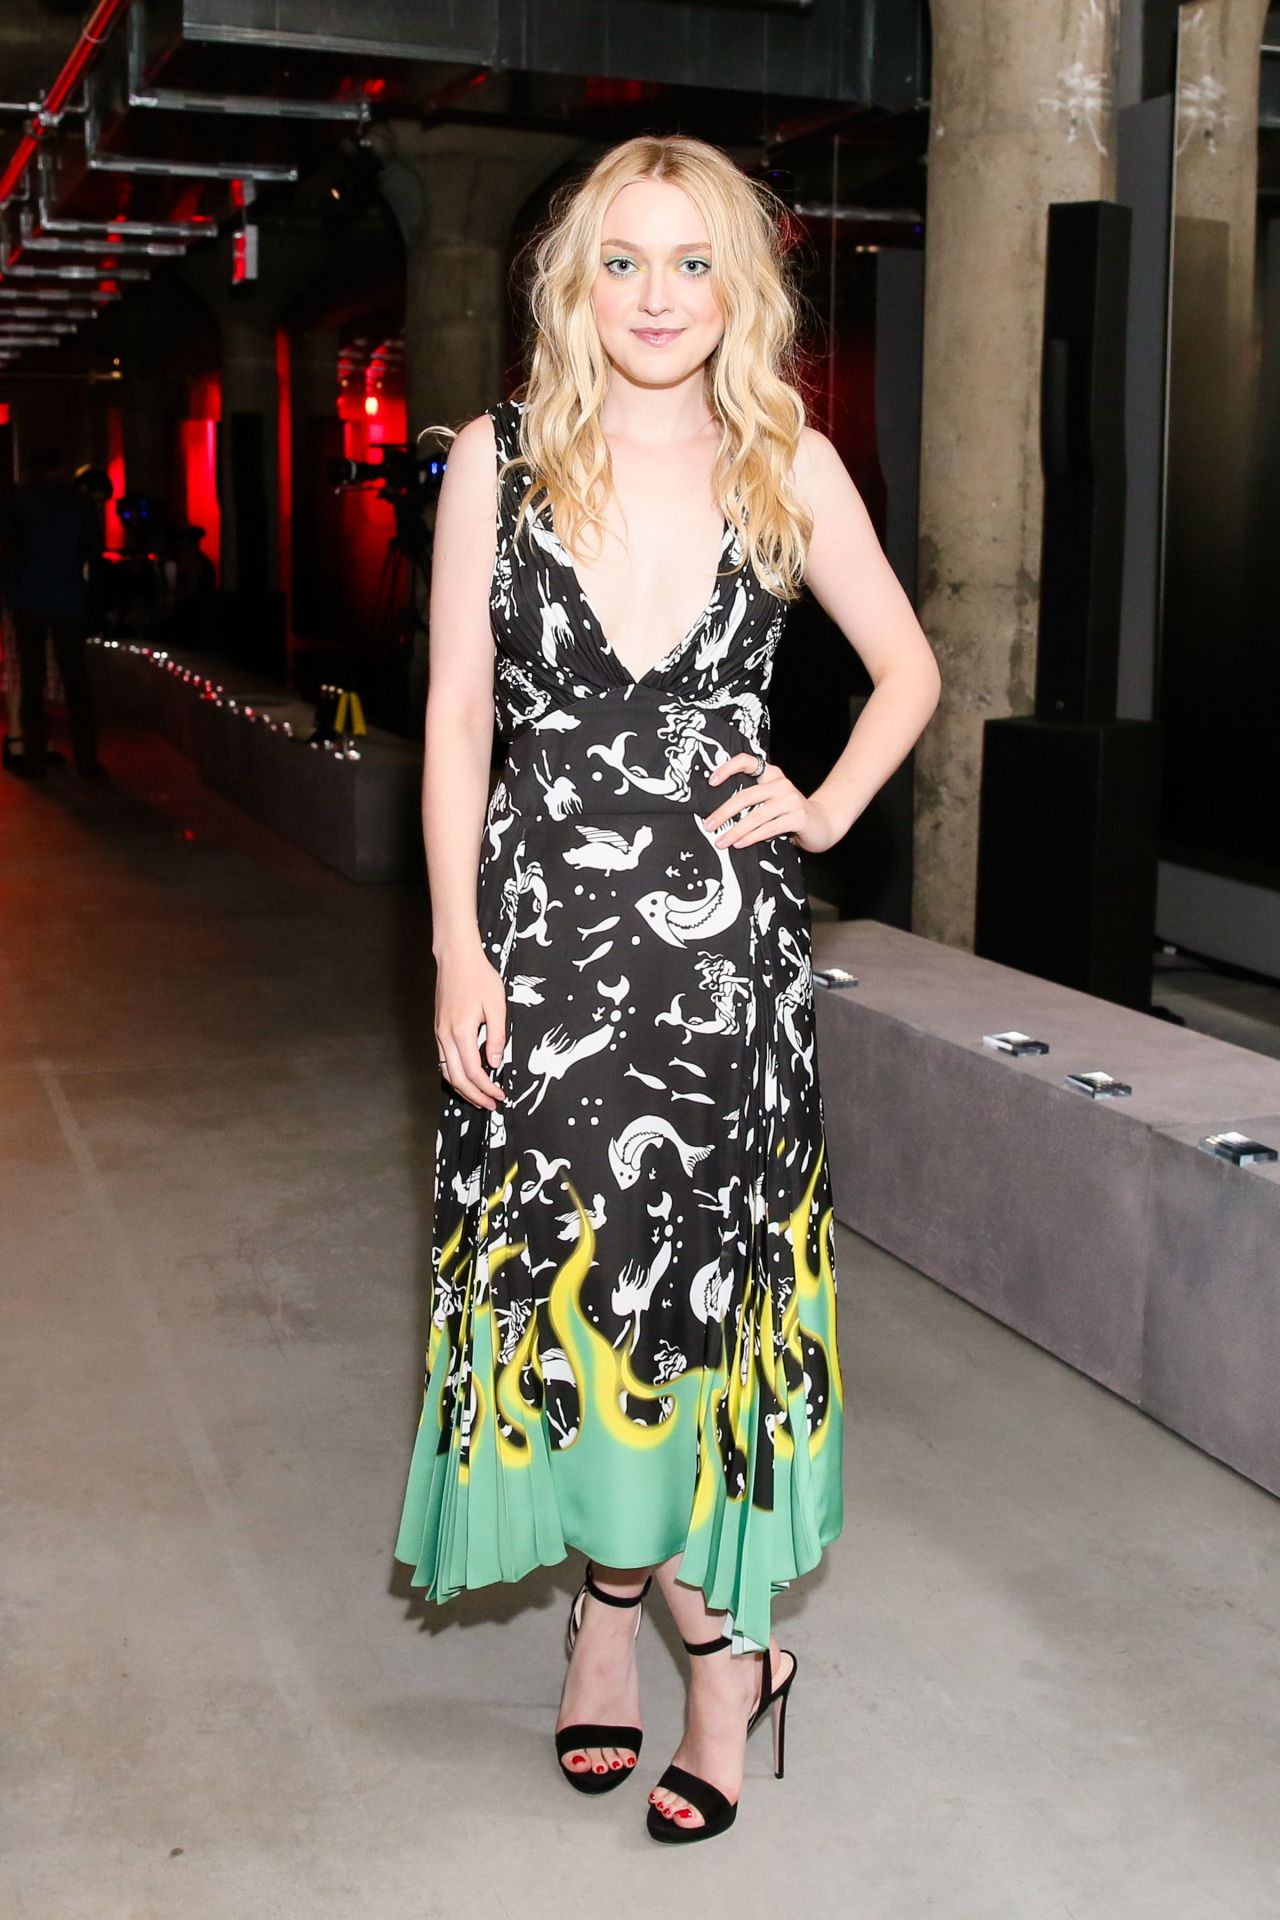 http://celebmafia.com/wp-content/uploads/2018/05/dakota-fanning-prada-resort-2019-show-in-nyc-05-04-2018-3.jpg